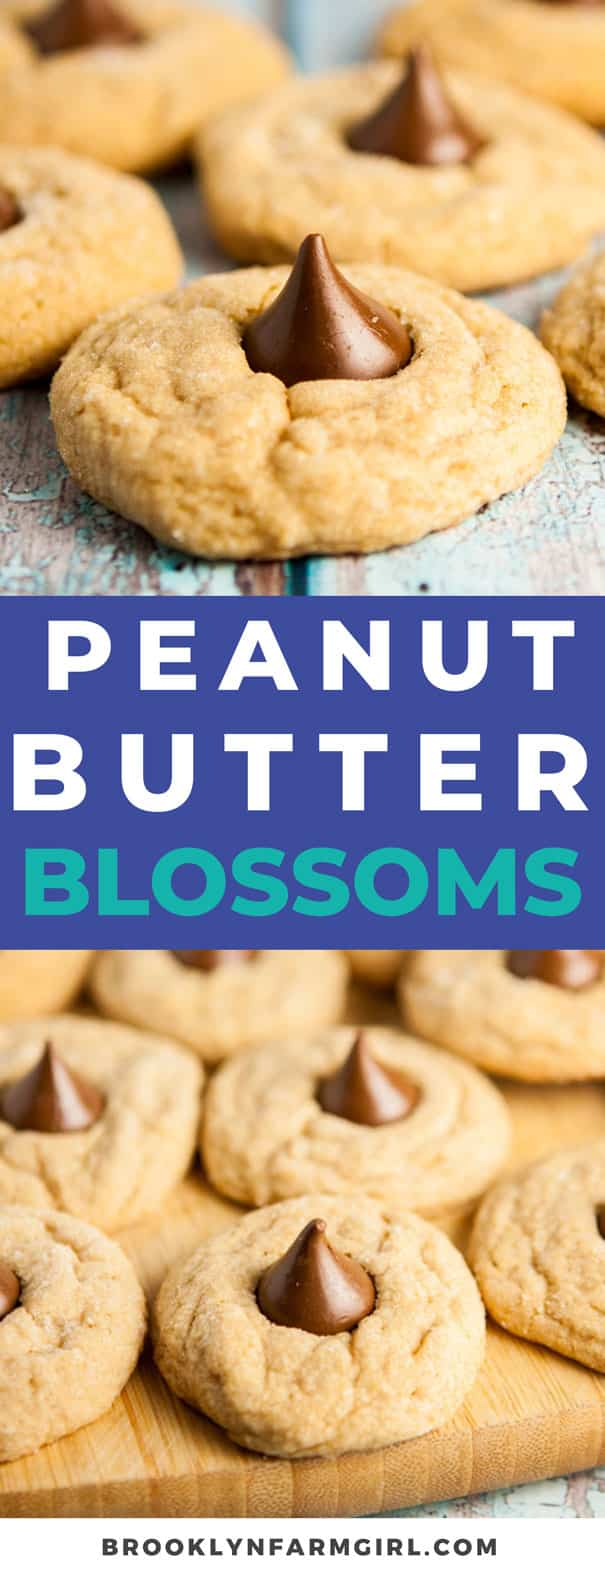 Easy to make Peanut Butter Blossoms cookies.  The classic cookies are chewy with a chocolate Hershey kiss in the middle.  One of my favorite homemade Christmas cookies to bake!